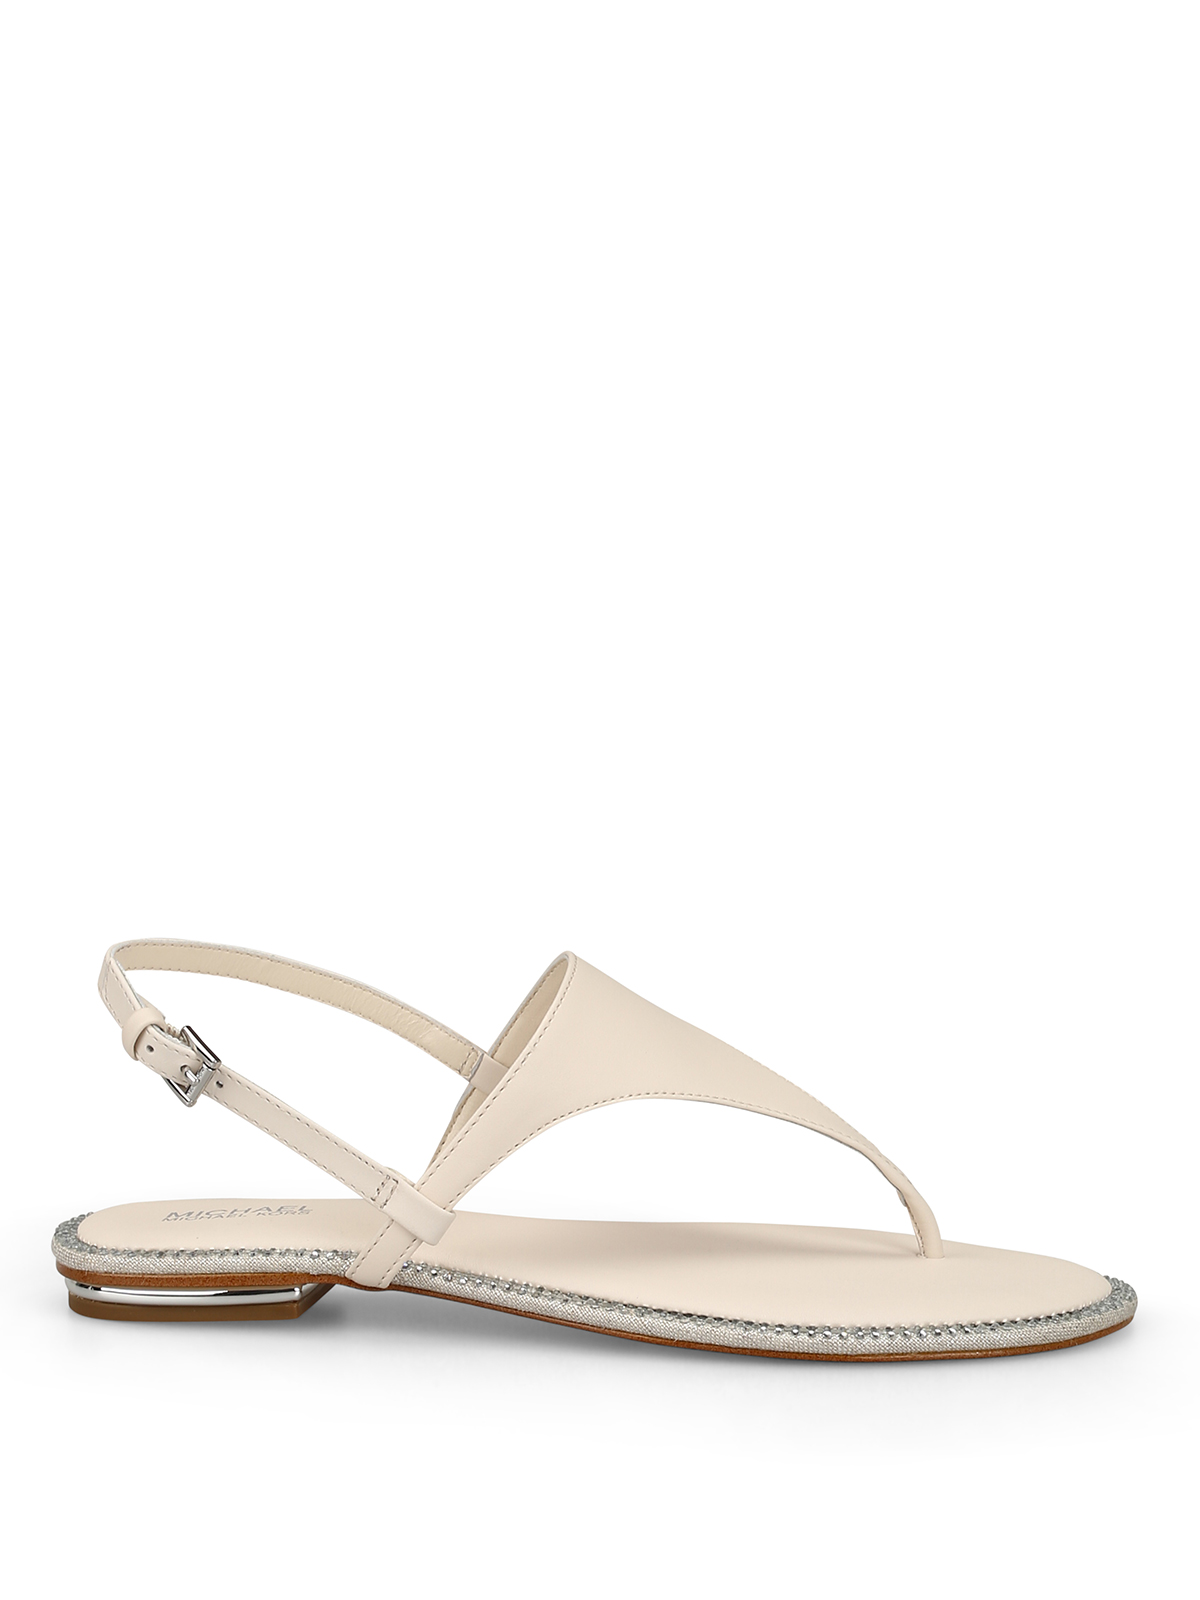 Michael Kors Enid Embellished Thong Sandals In White